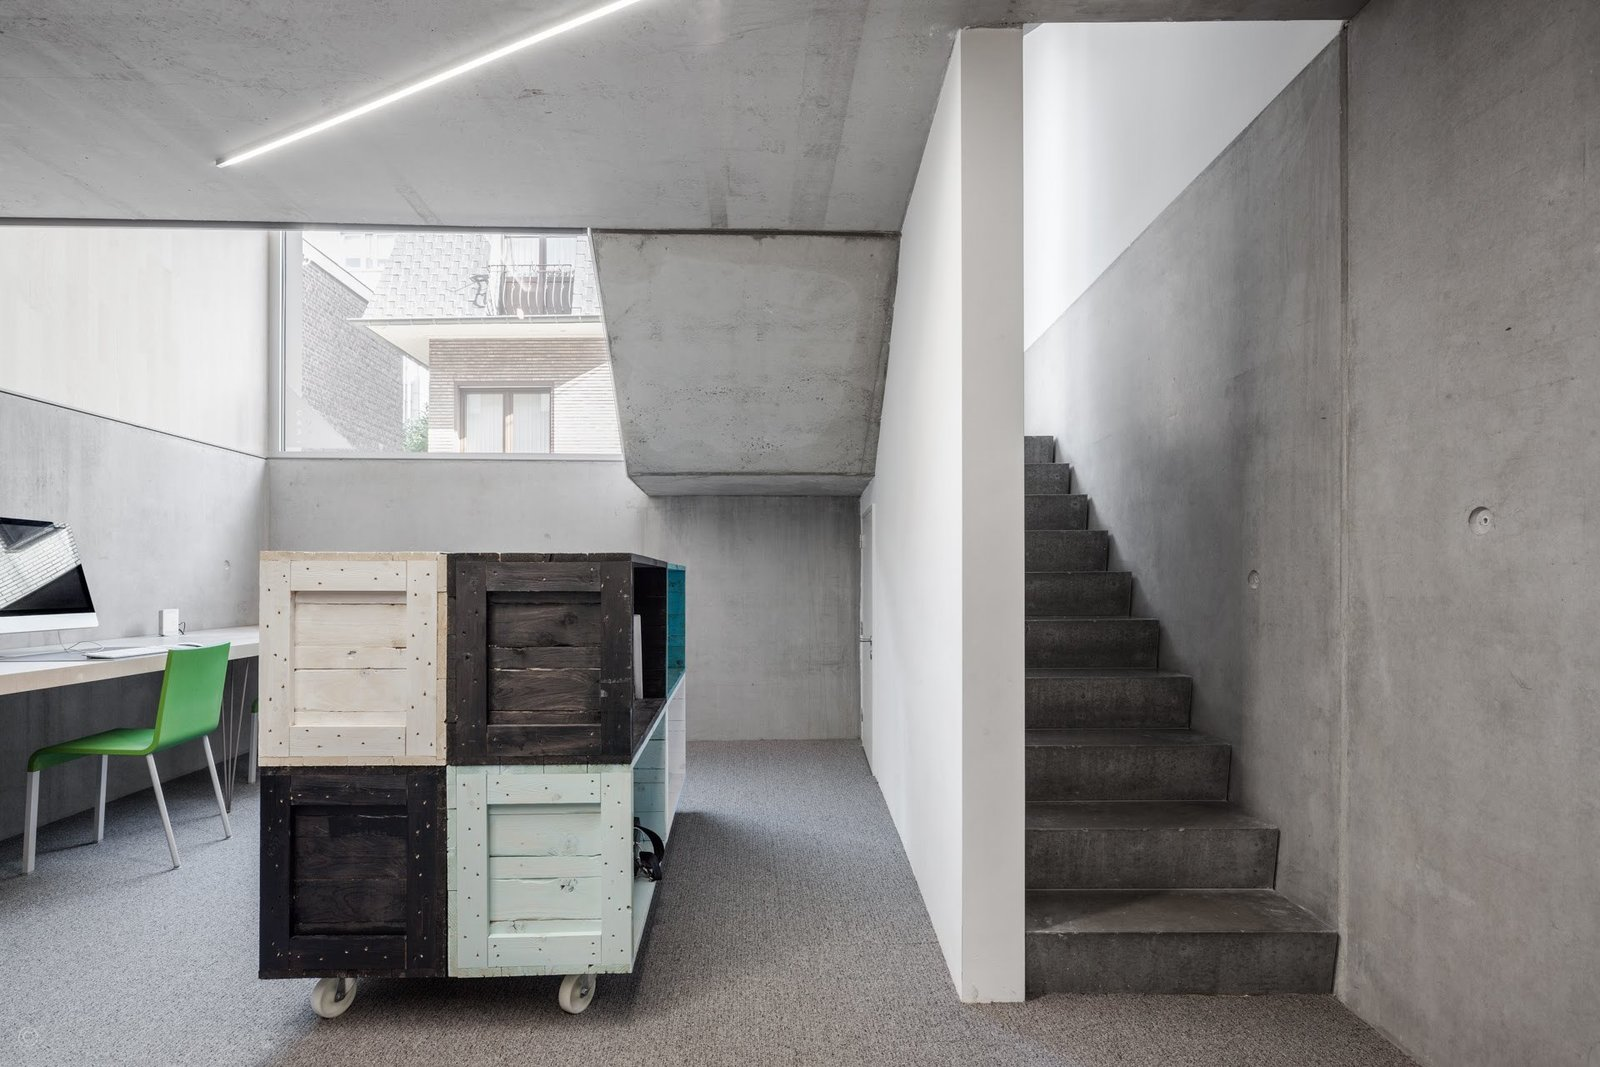 Office, Desk, Chair, Storage, Lamps, Concrete Floor, and Carpet Floor  Private House and Architecture Office